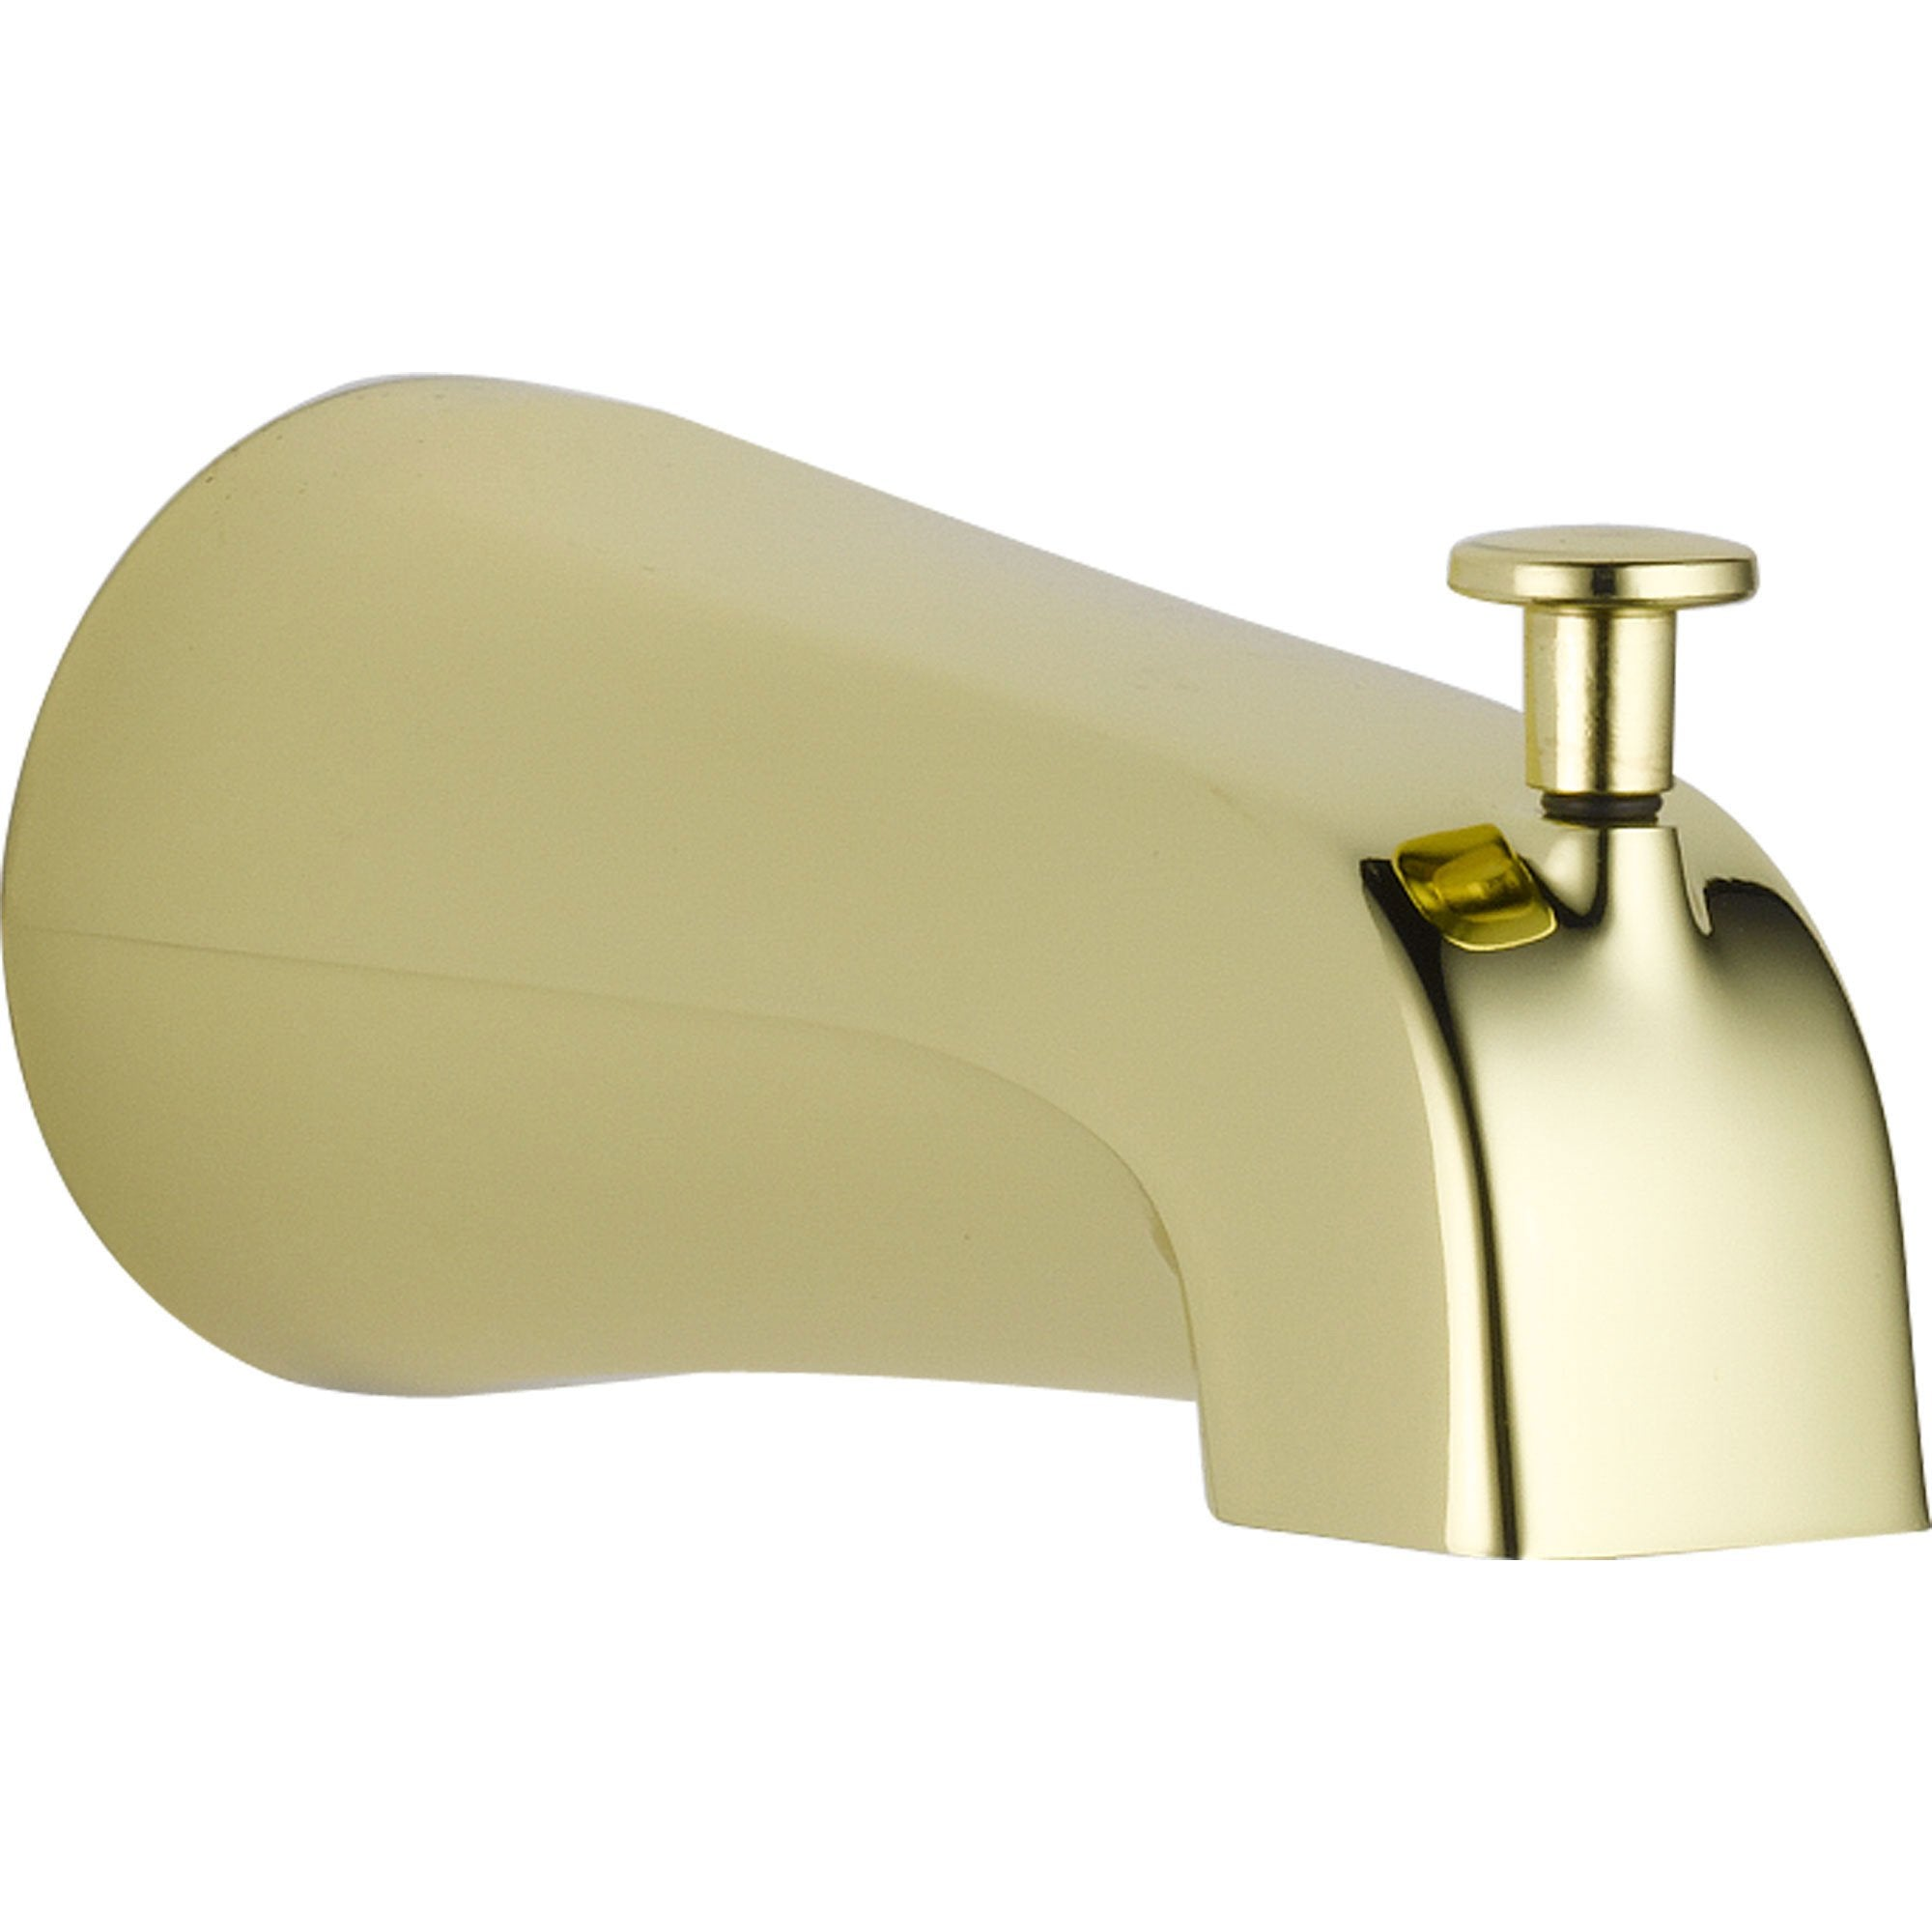 Delta Pull-up Diverter Tub Spout in Polished Brass 561302